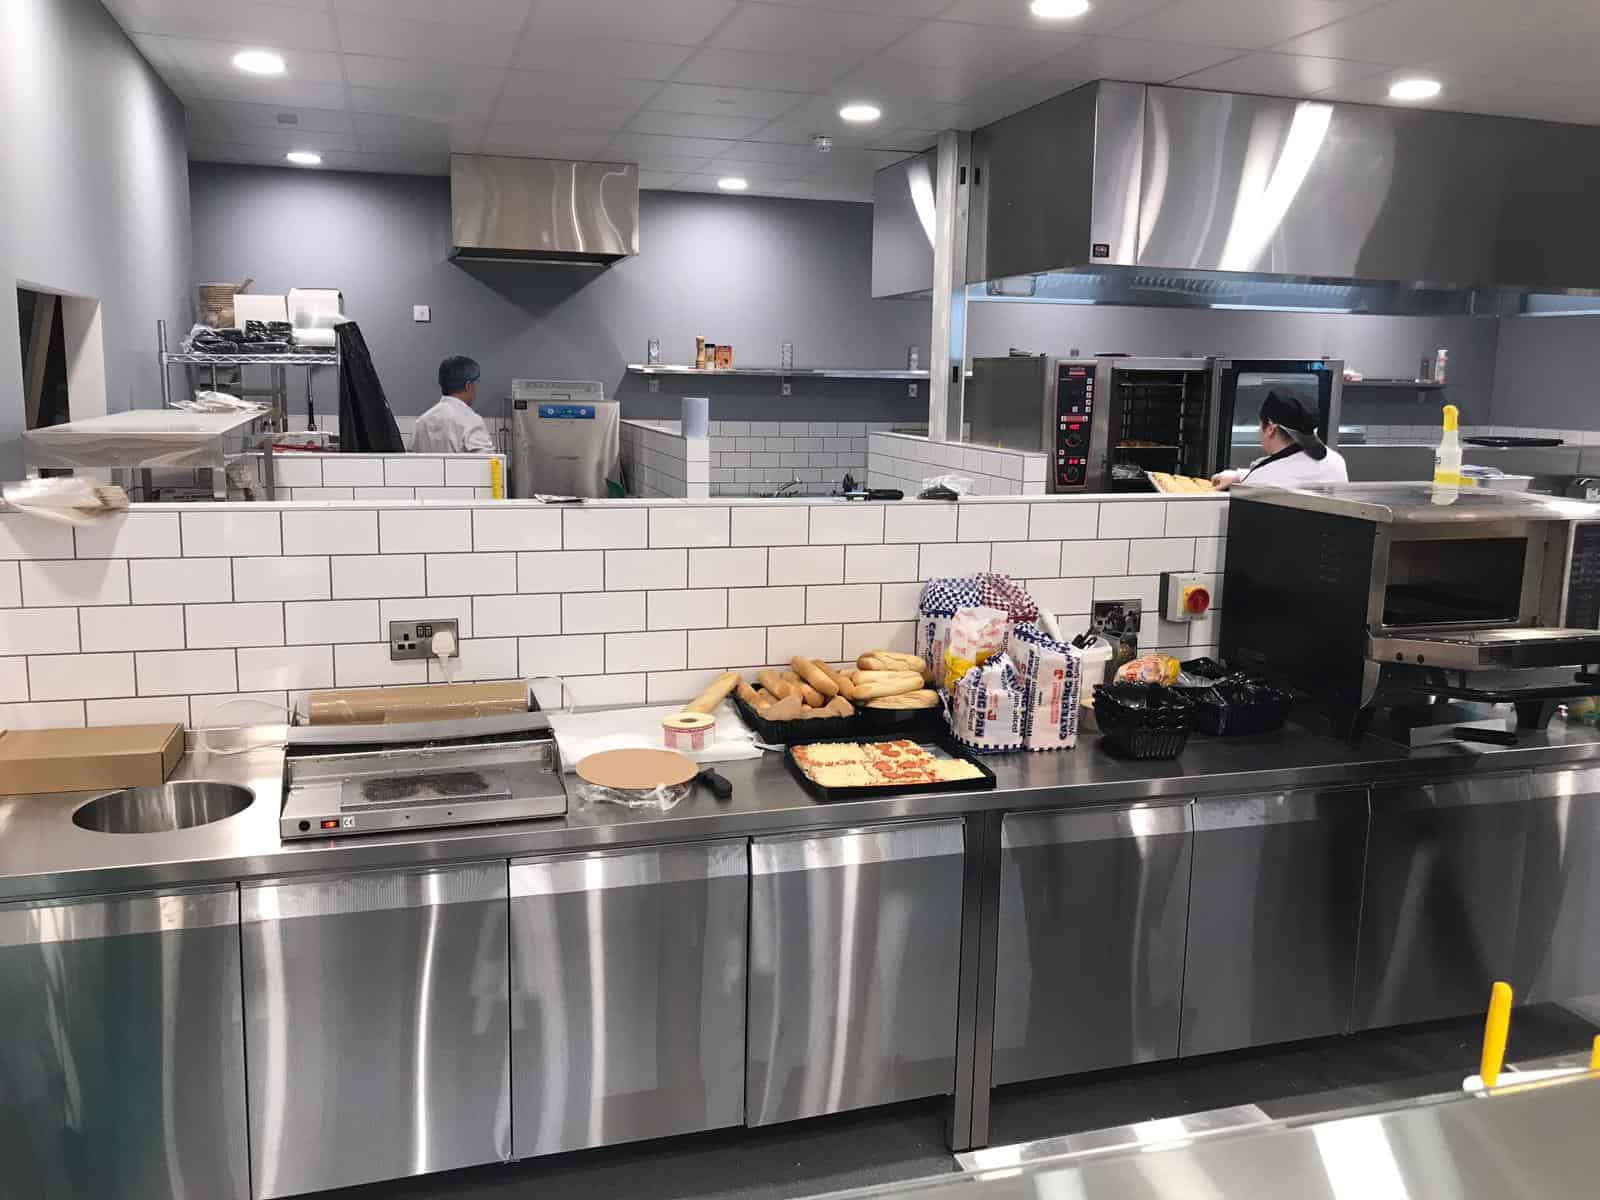 Martin Food Equipment Work-Counter-and-Prep-Area McHugh's Centra, Greendale, Kilbarrack, Dublin Installations